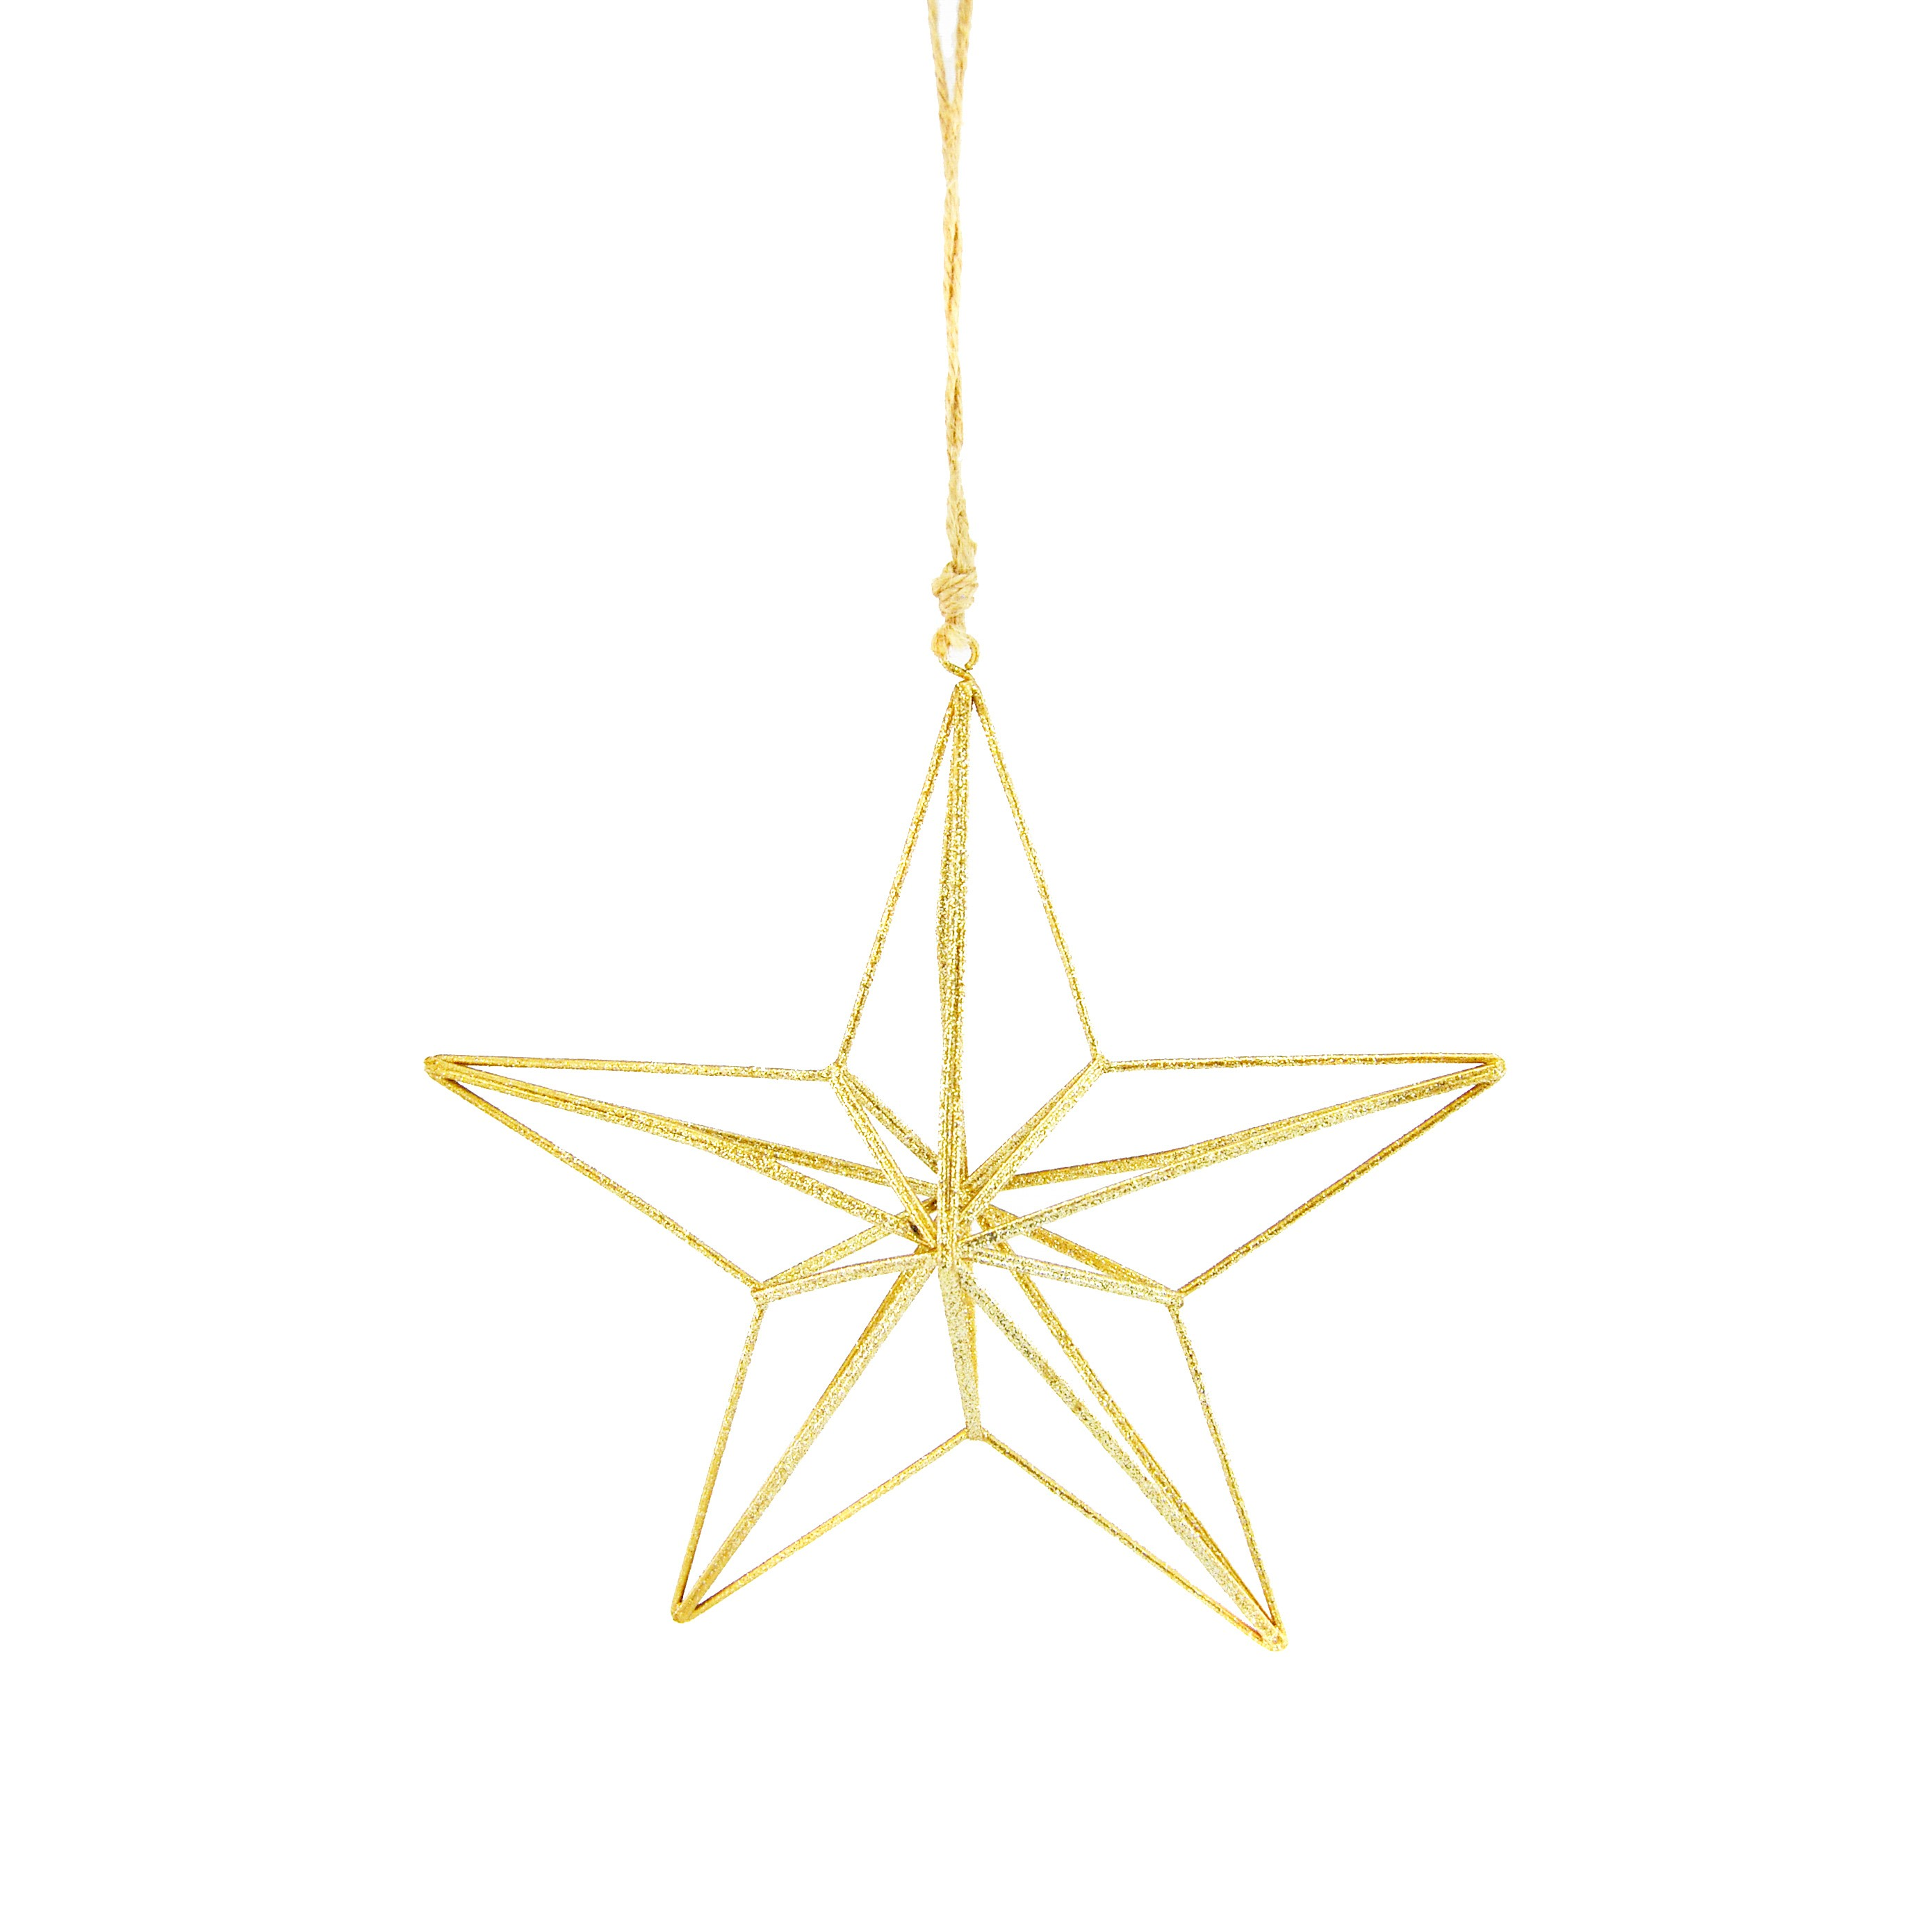 HANG WIRE 3D STAR GOLD (L)